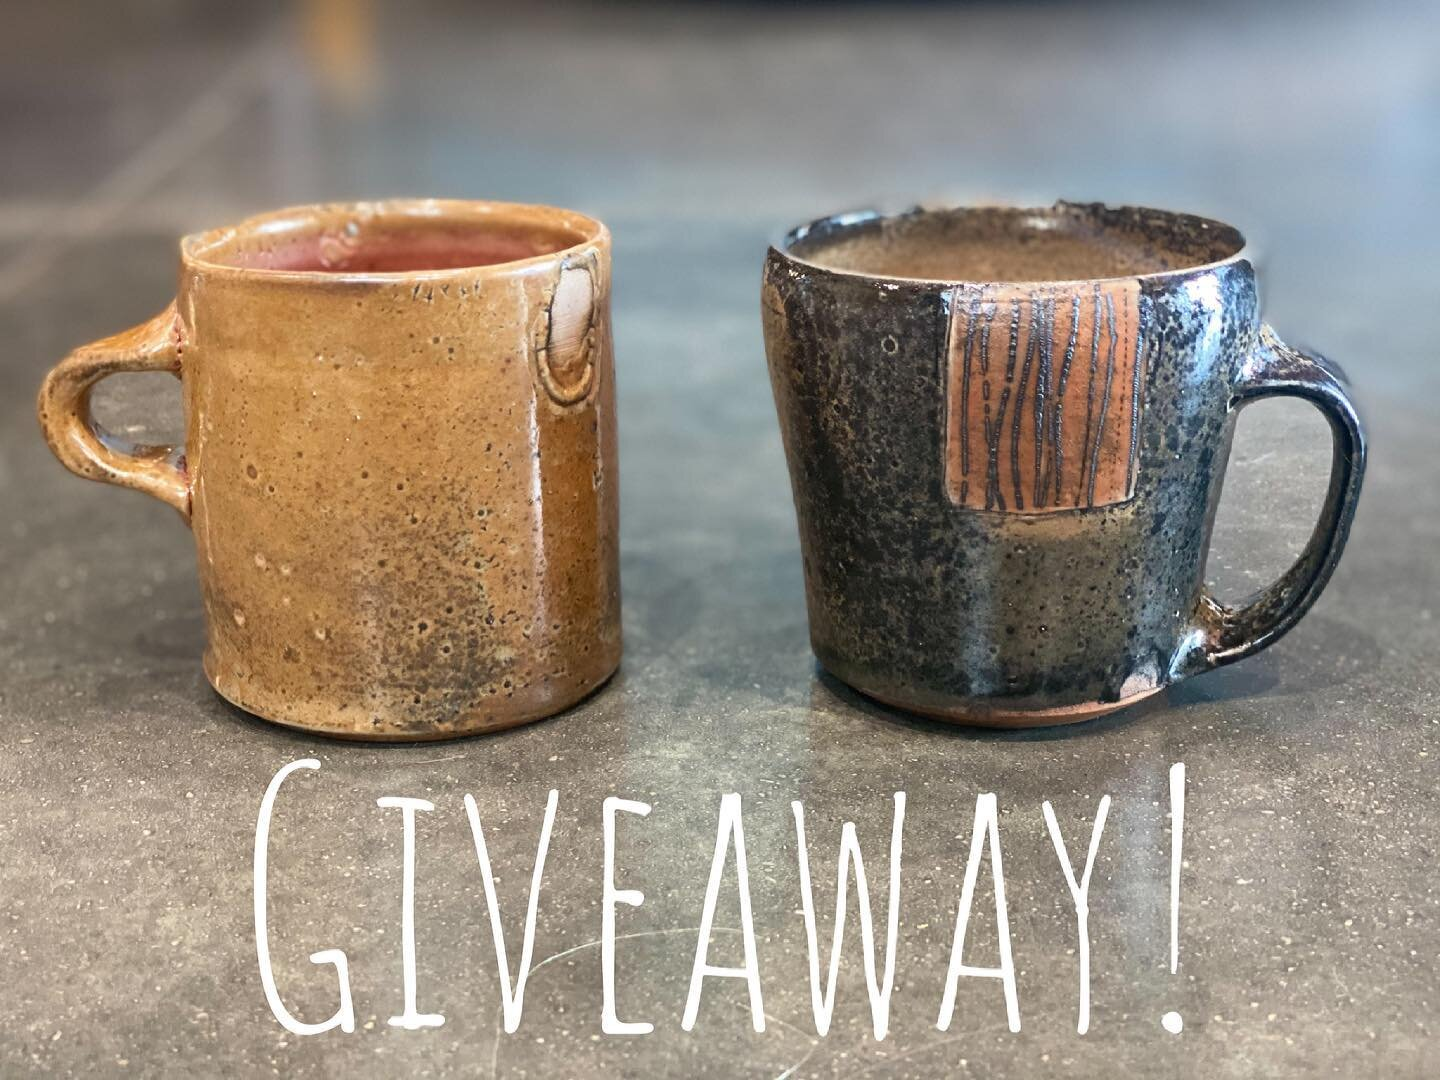 💥Double mug giveaway!💥 We wanted to say thanks to everyone who has been supporting the growth and momentum of our studio. So to show our appreciation, we would like to giveaway a pair of mugs. One of @meganmitchellceramics and one of @jdjorgensonpottery . They are both 14oz. mugs made of porcelain with a lovely carbon trap Shino glaze on them.  This giveaway is not associated with Instagram and is open worldwide.  To enter:  1. like this post  2. Follow @maineprairiestudio  3. Tag some friends who would like these mugs. Each tag is another entry.  4. For 5 extra entries share this t your story but make sure to tag us so we can see it!  The giveaway will be open until 1pm CST, April 10th. Winner will be chosen at random and DM'ed to claim their mugs. Winner will be announced Monday April 12th at 1pm. Good luck everyone!